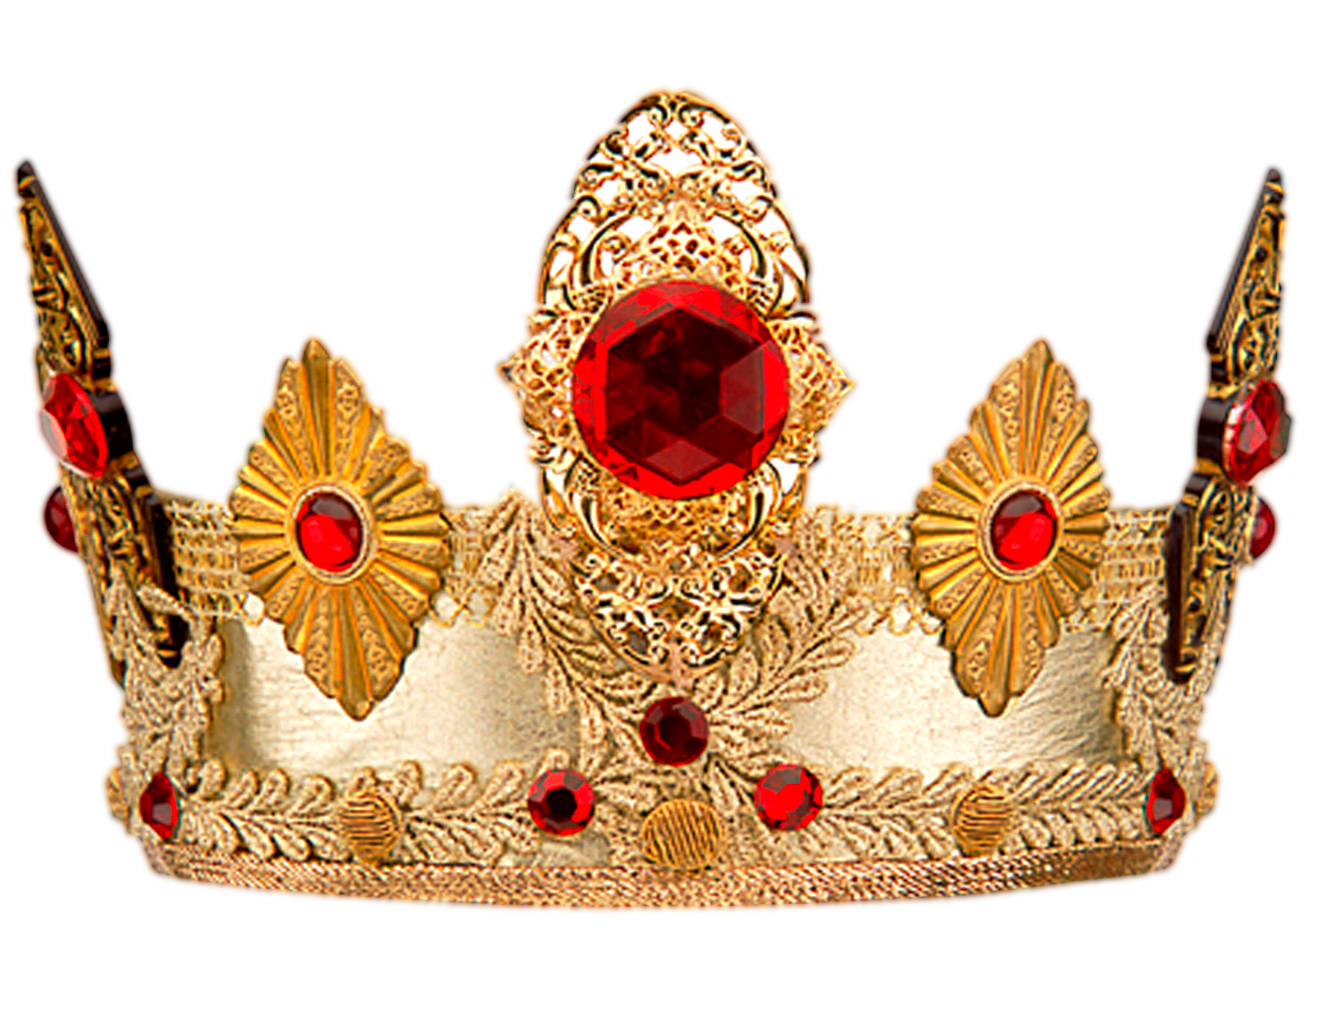 Crown images free download. Flower crowns png